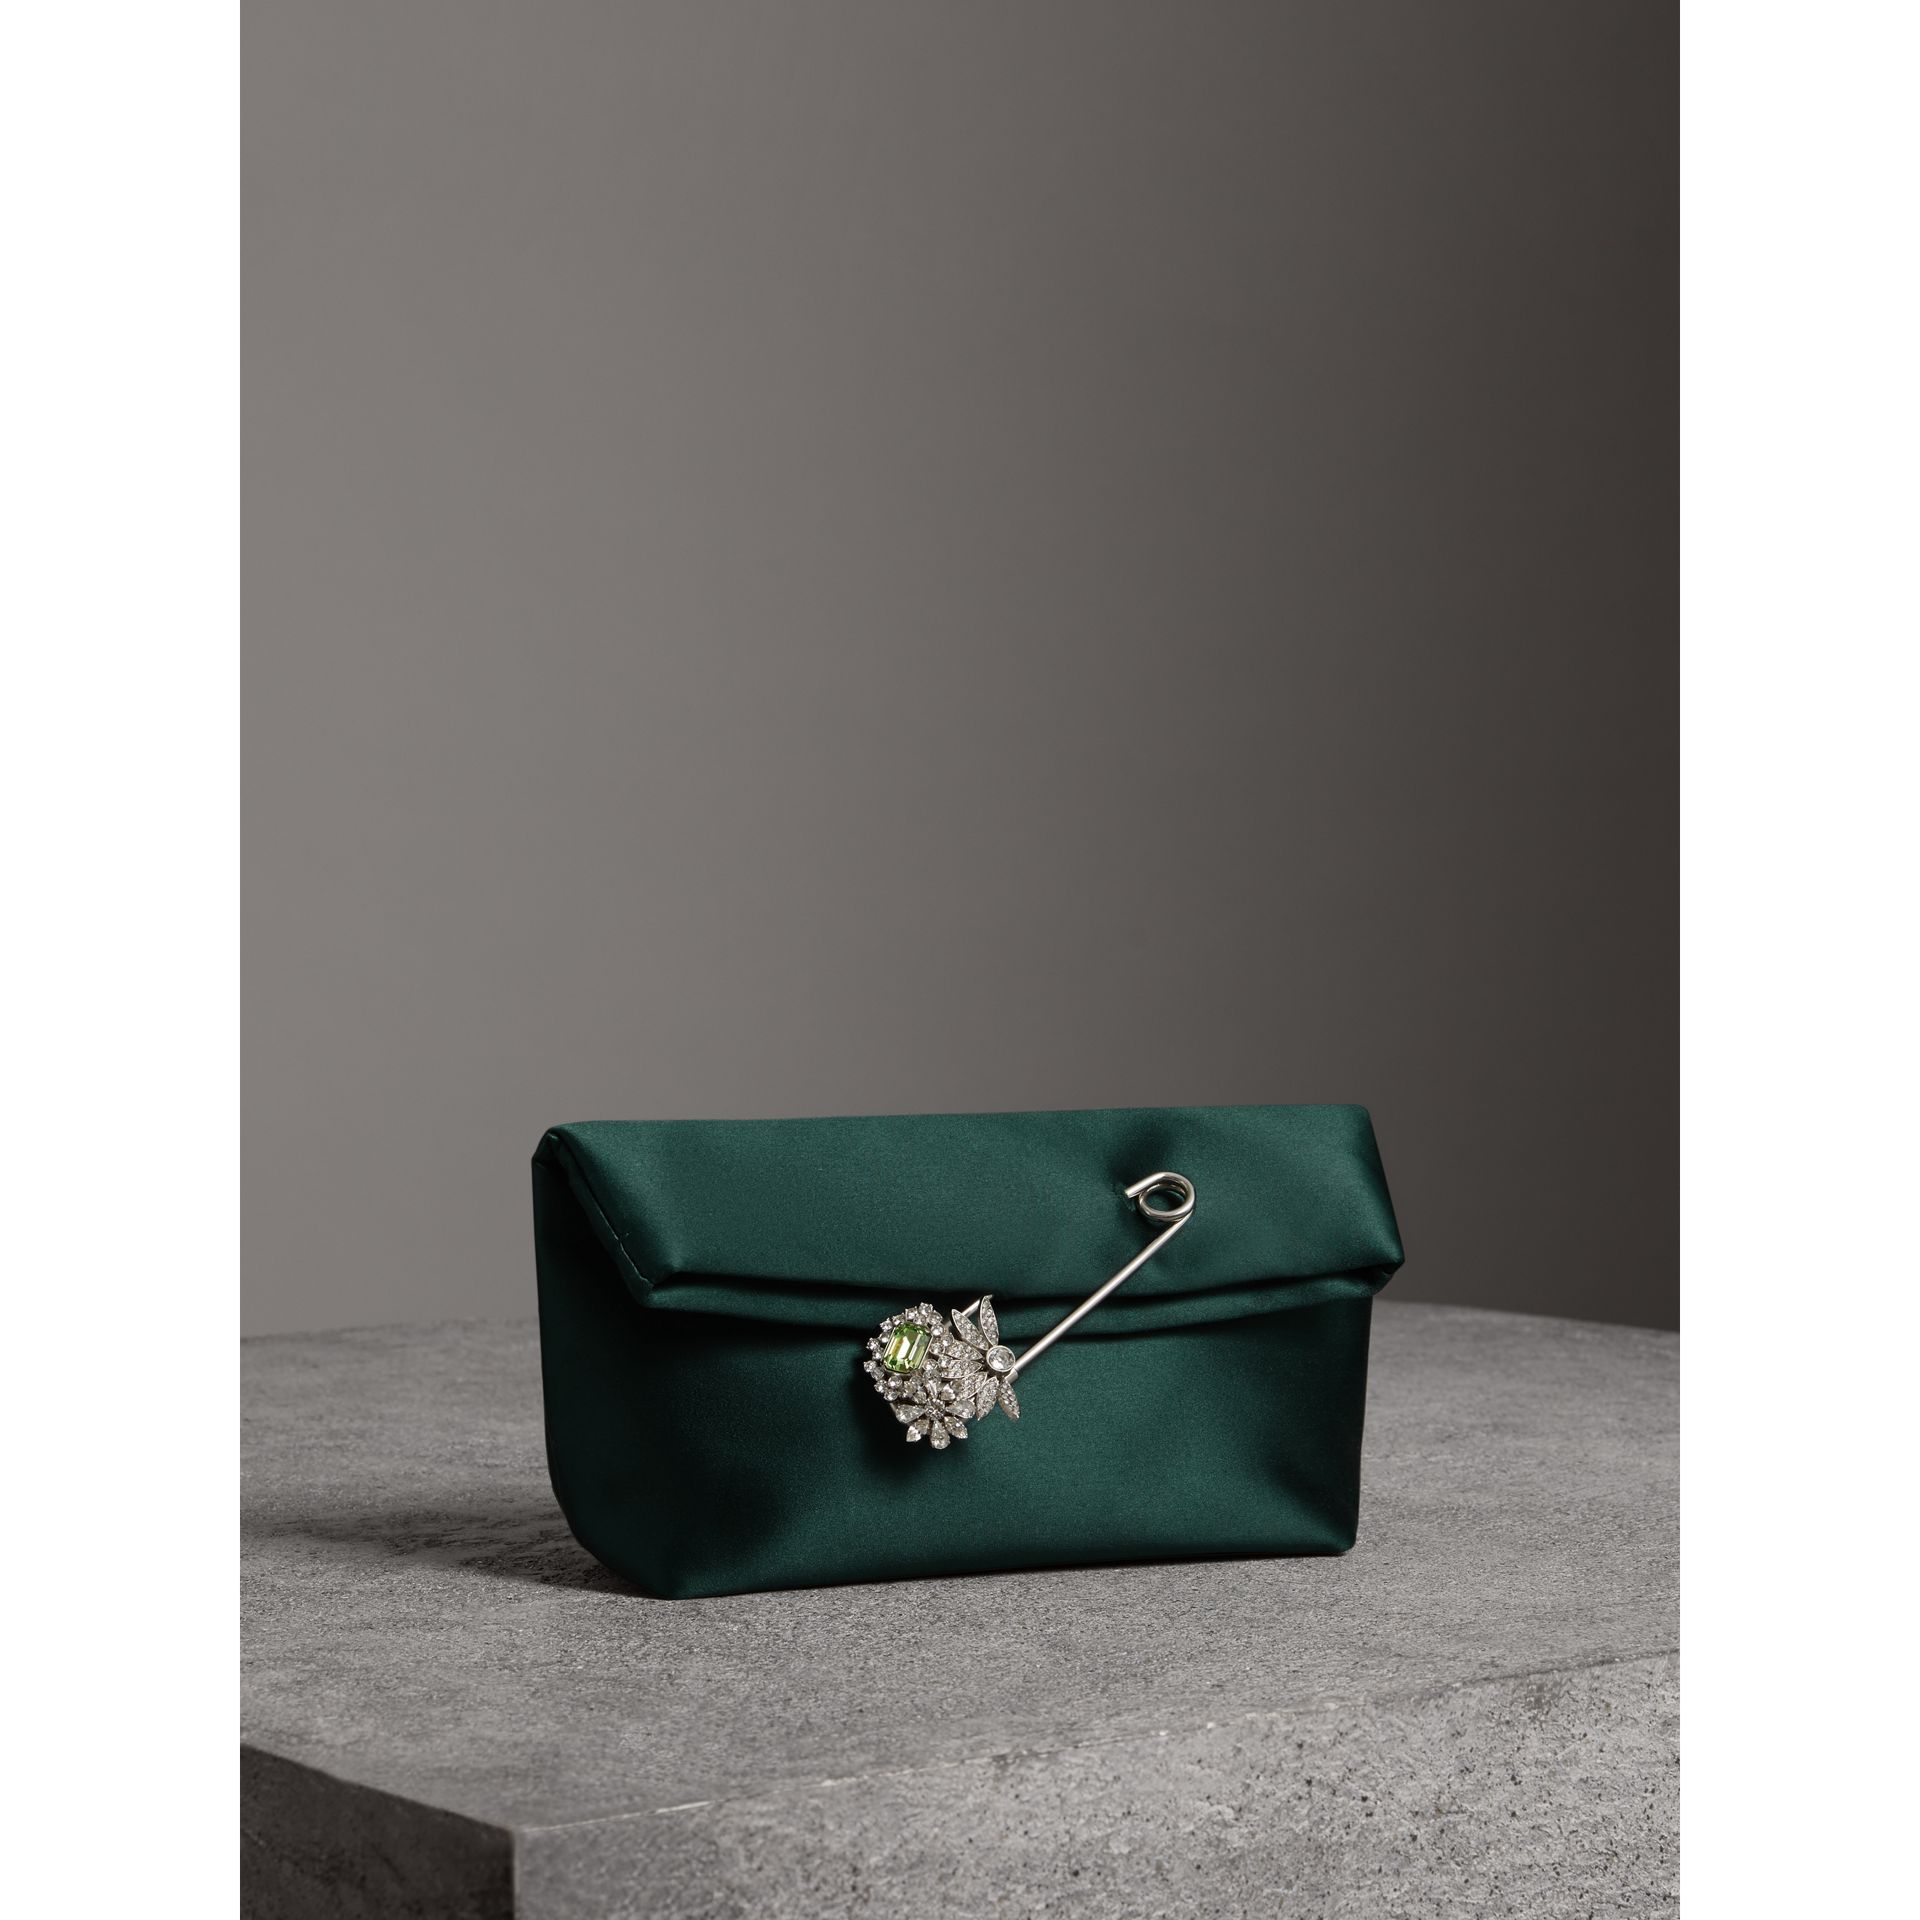 Petit clutch The Pin en satin (Vert Forêt Sombre) - Femme | Burberry Canada - photo de la galerie 6